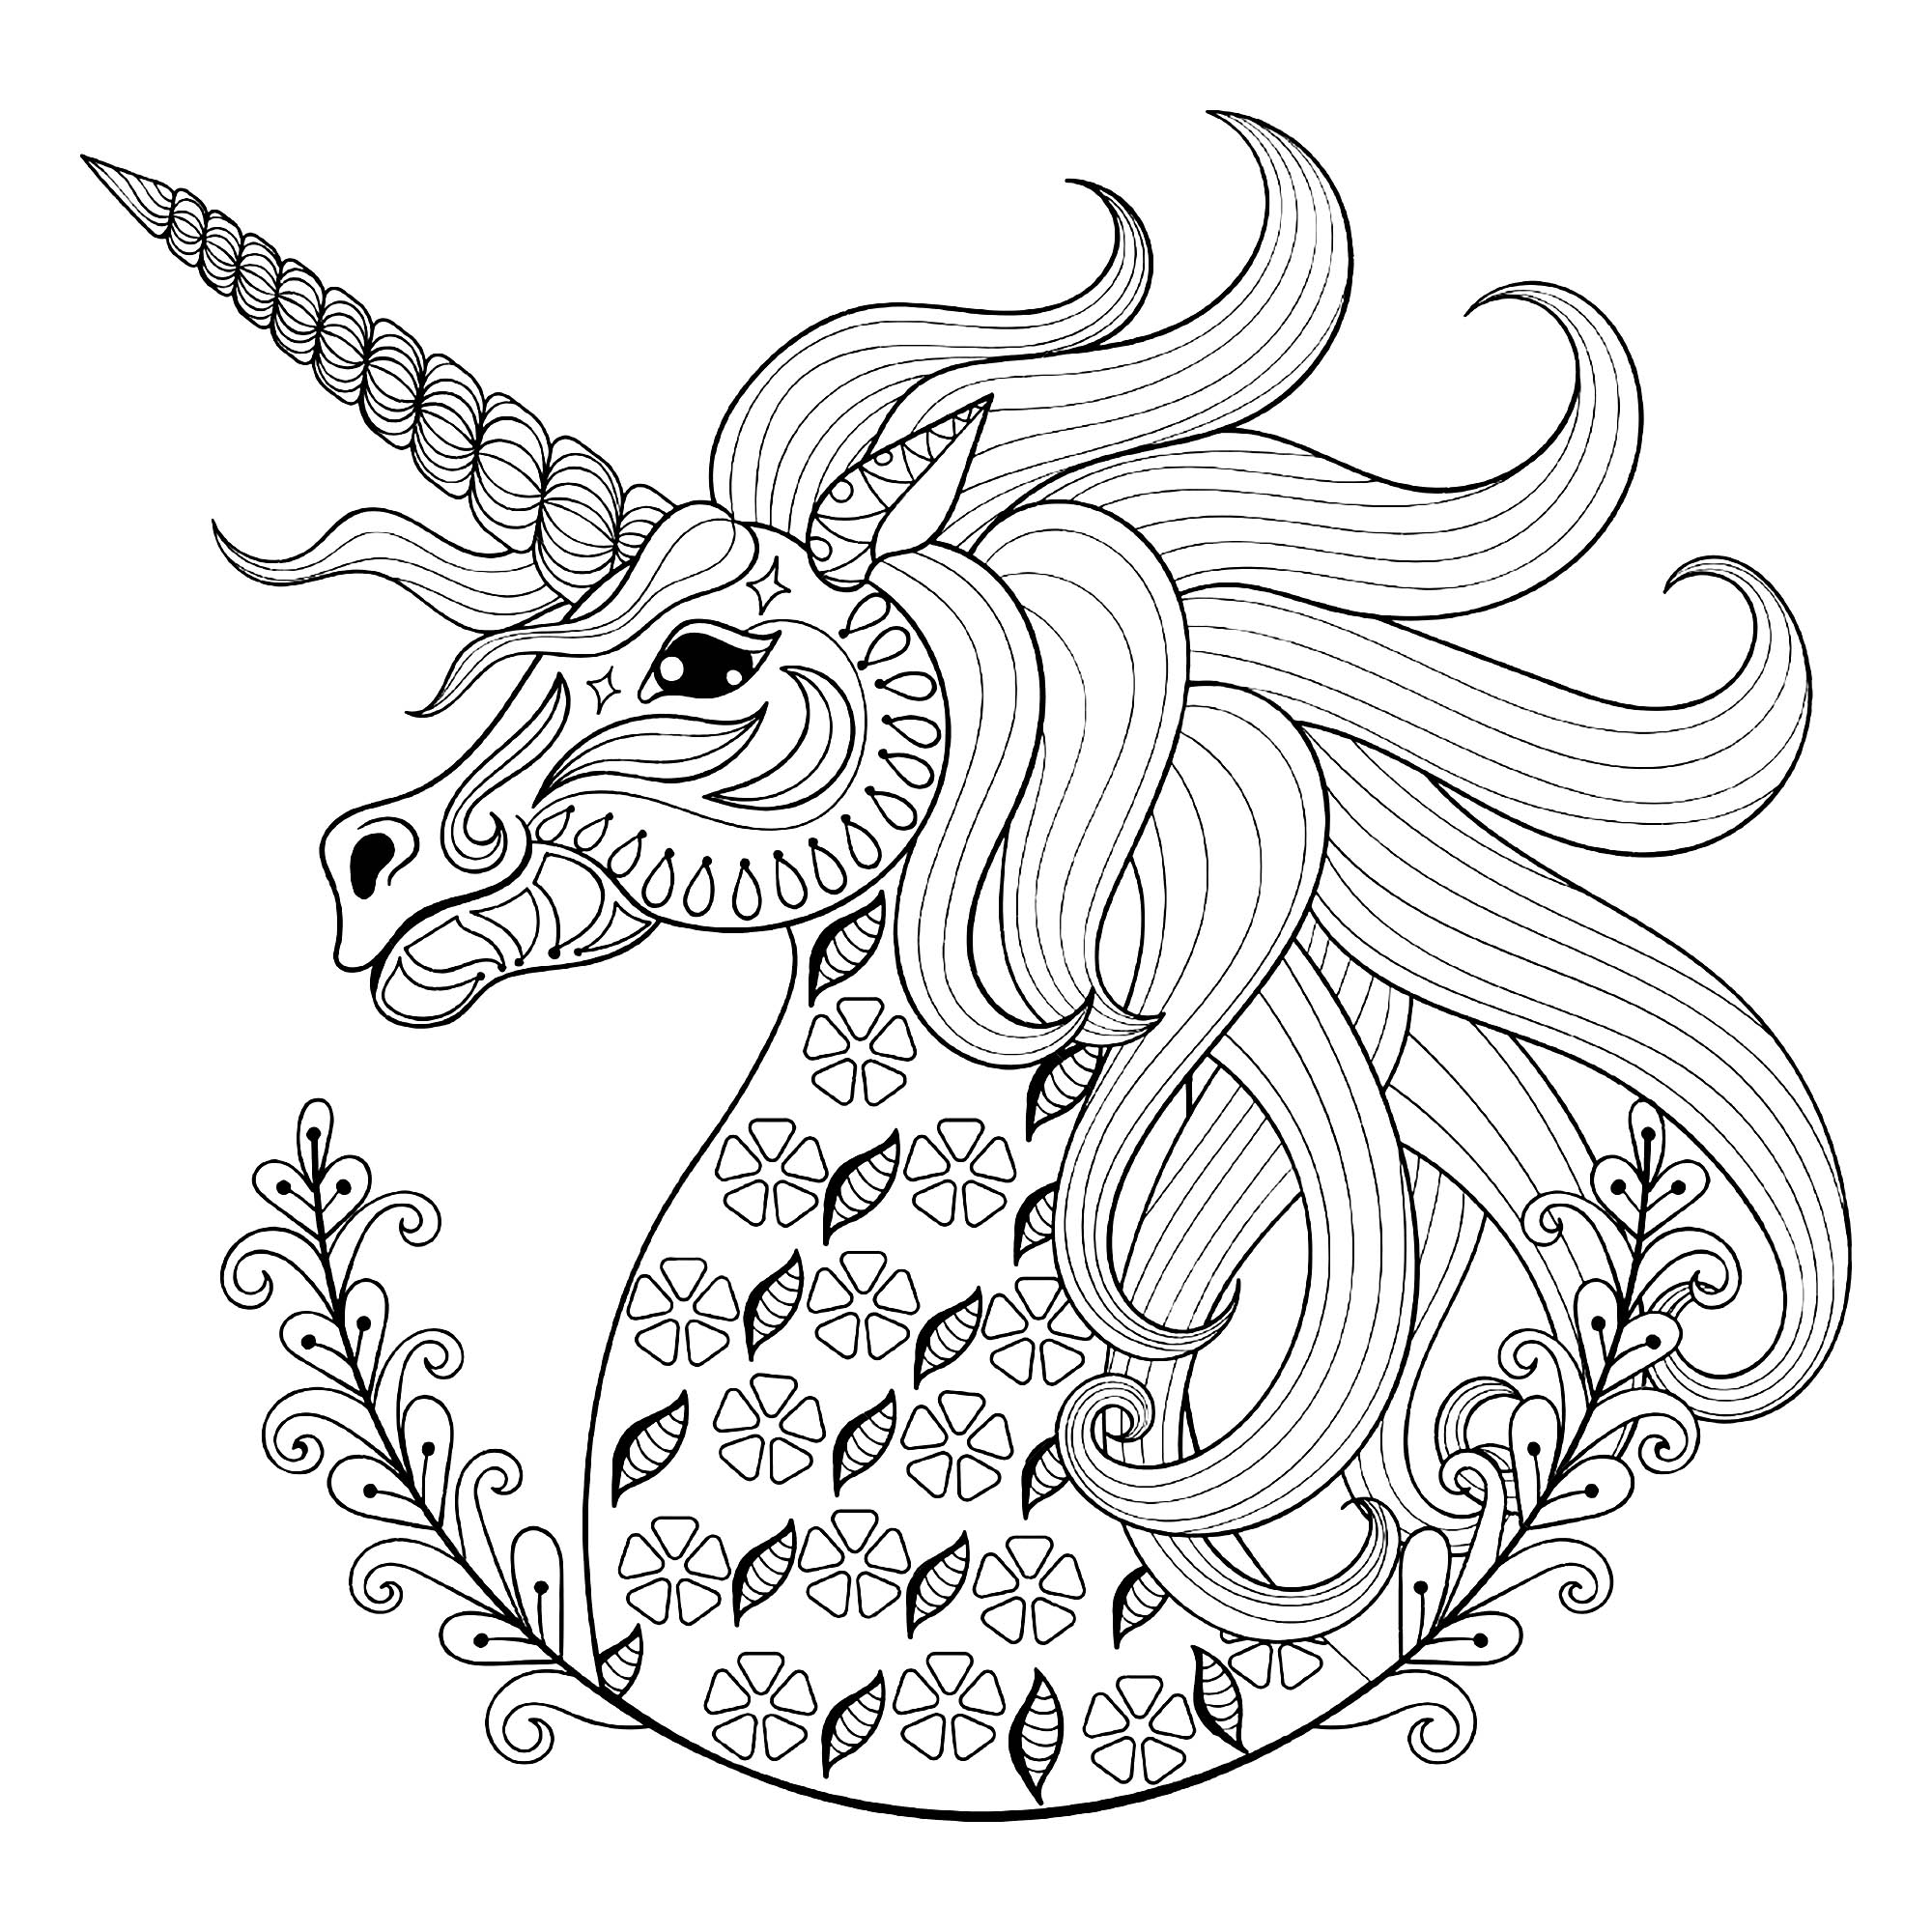 coloring pictures of unicorns coloring pictures of unicorns pictures coloring of unicorns